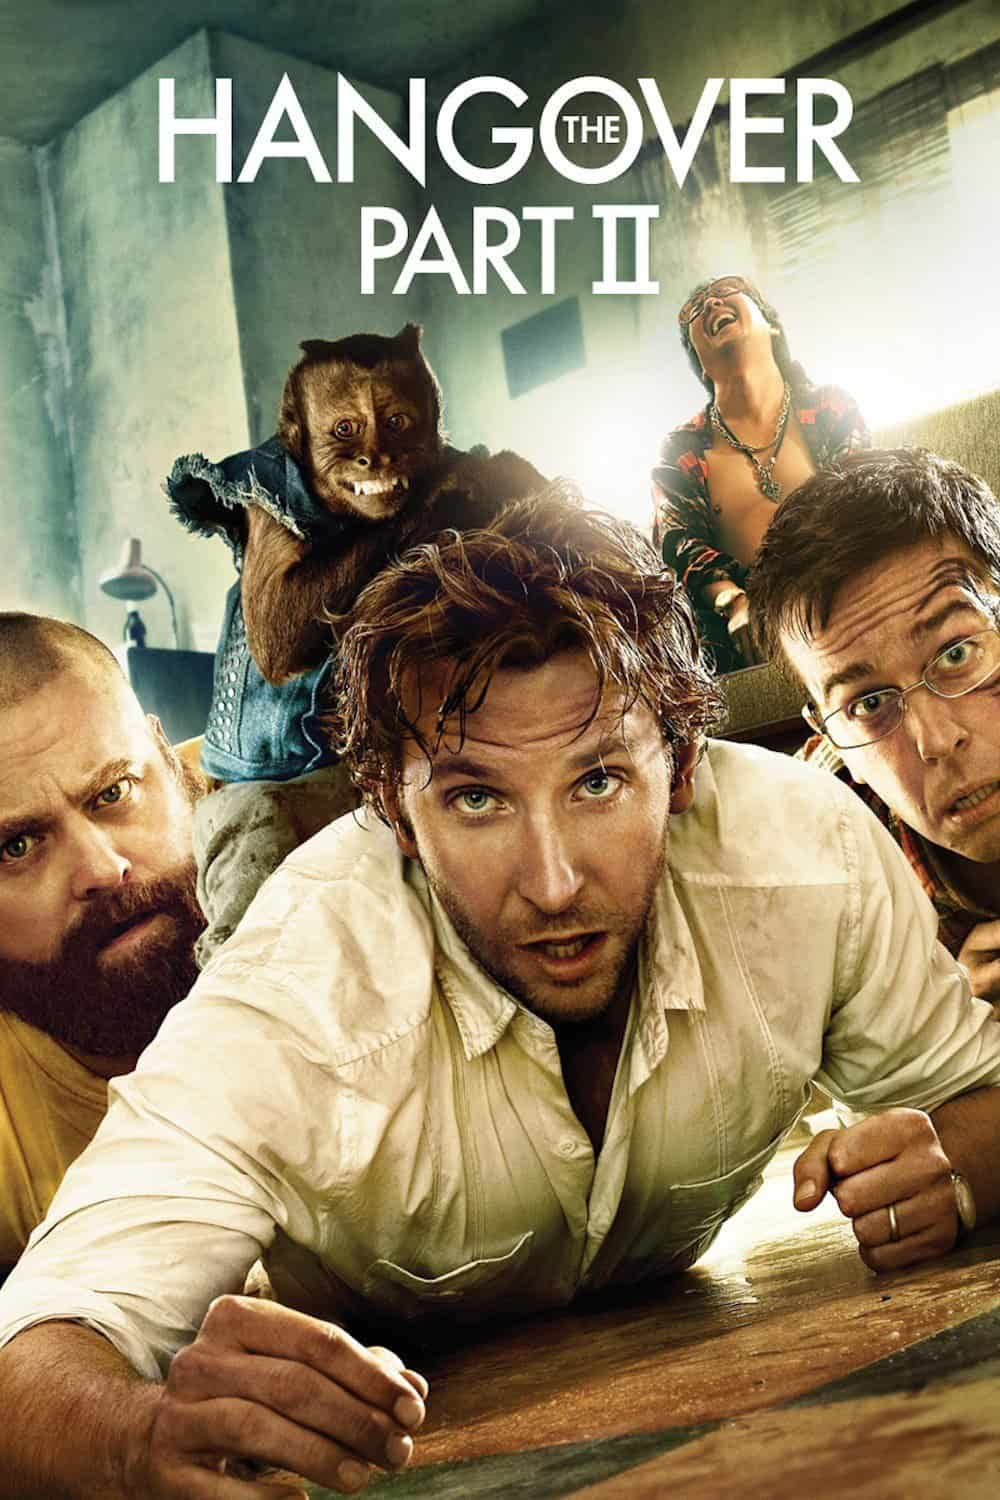 The Hangover Part II, 2011